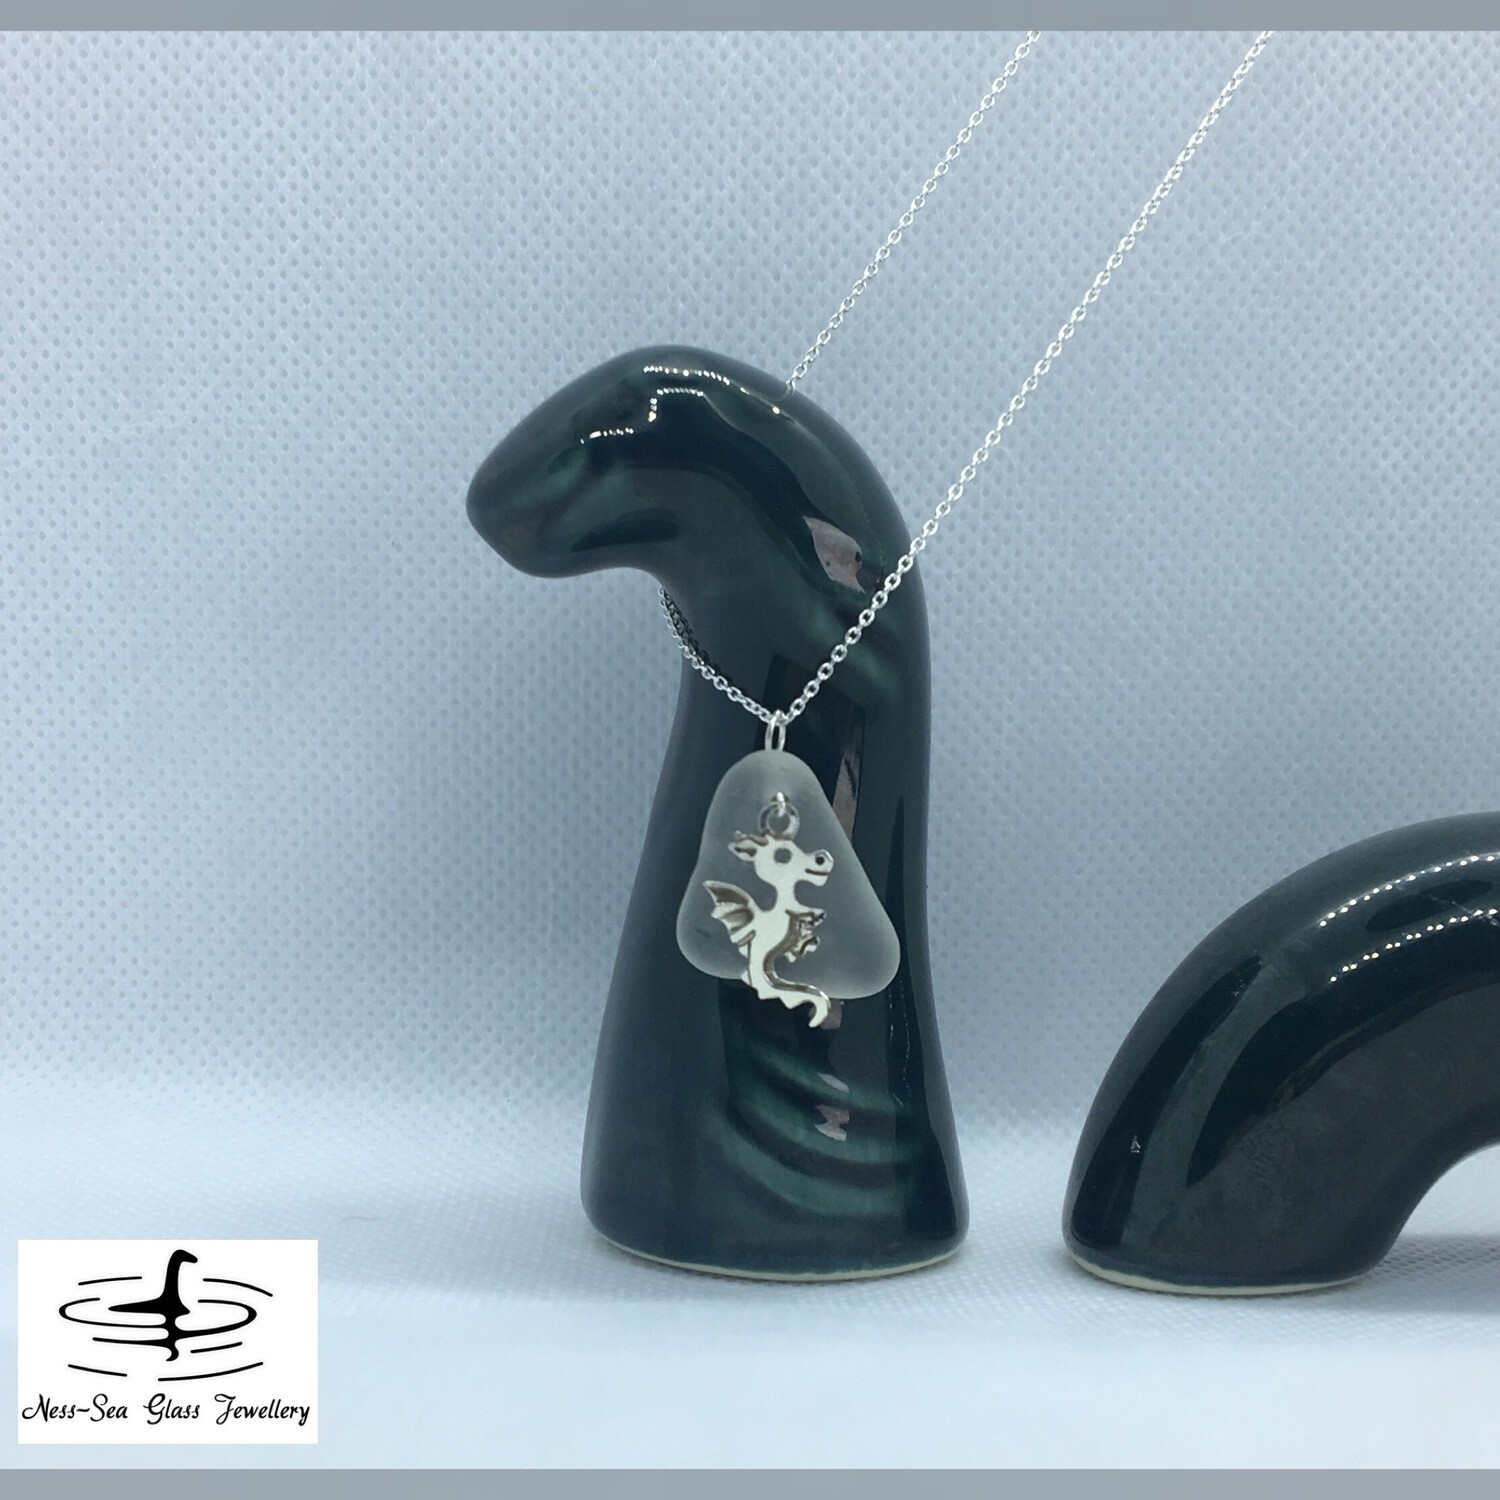 Clear Loch Ness Sea Glass Necklace with Sterling Silver Dragon Detail and Fine Sterling Silver Chain